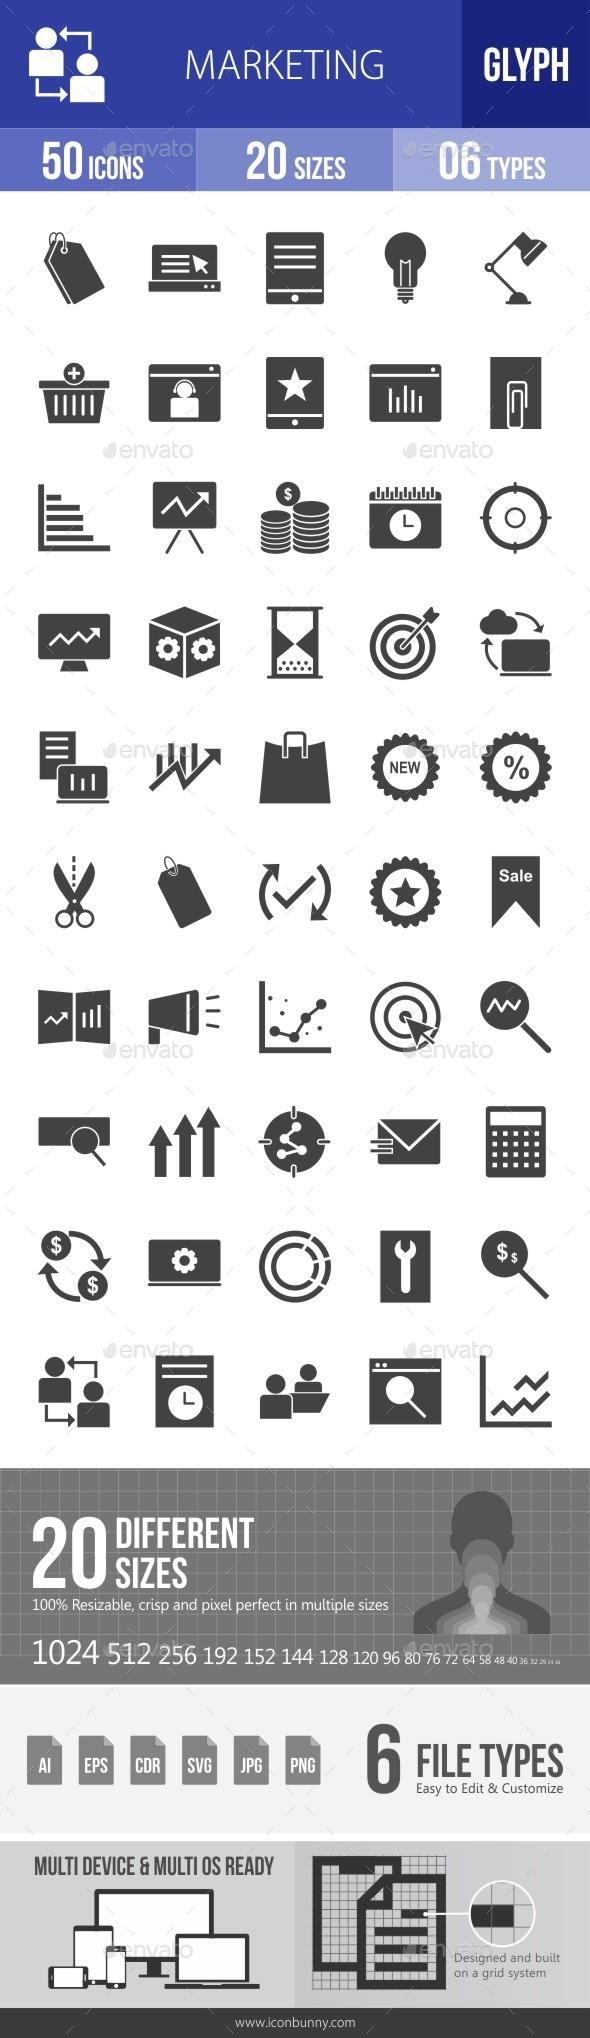 Marketing Glyph Icons - Icons